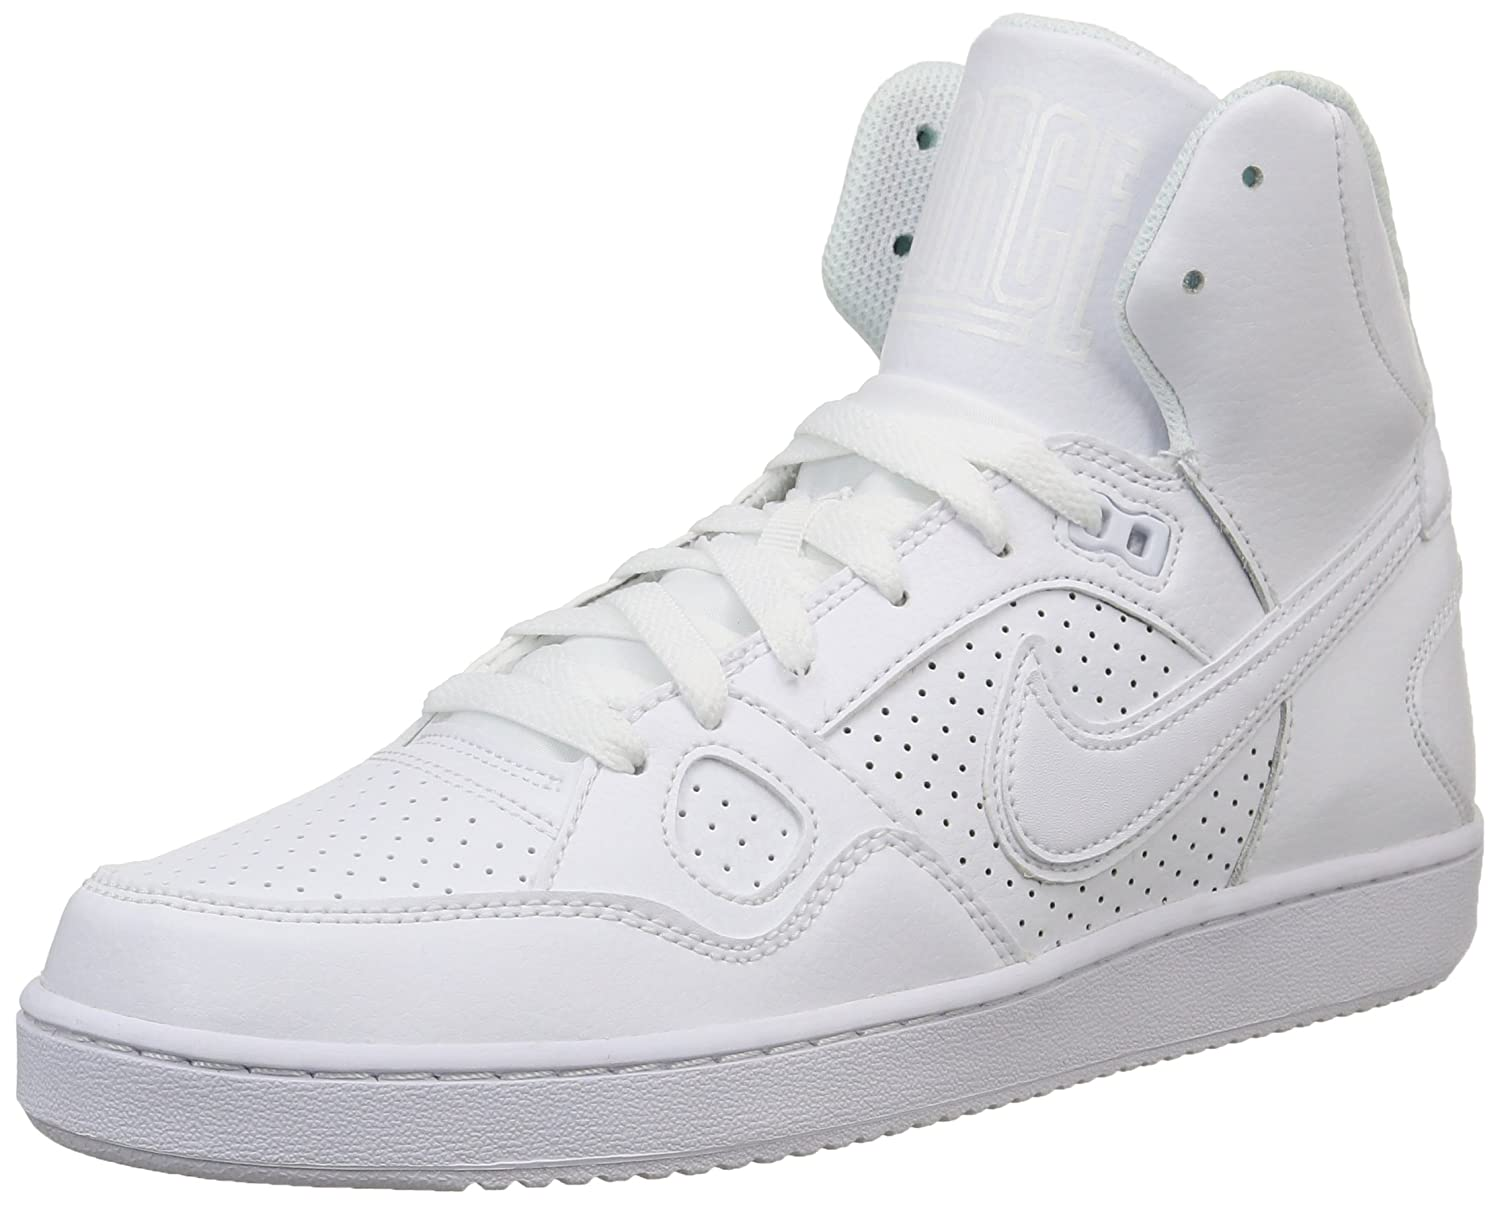 Nike Son Of Force Mid White Mens Trainers 8 UK: Amazon.co.uk